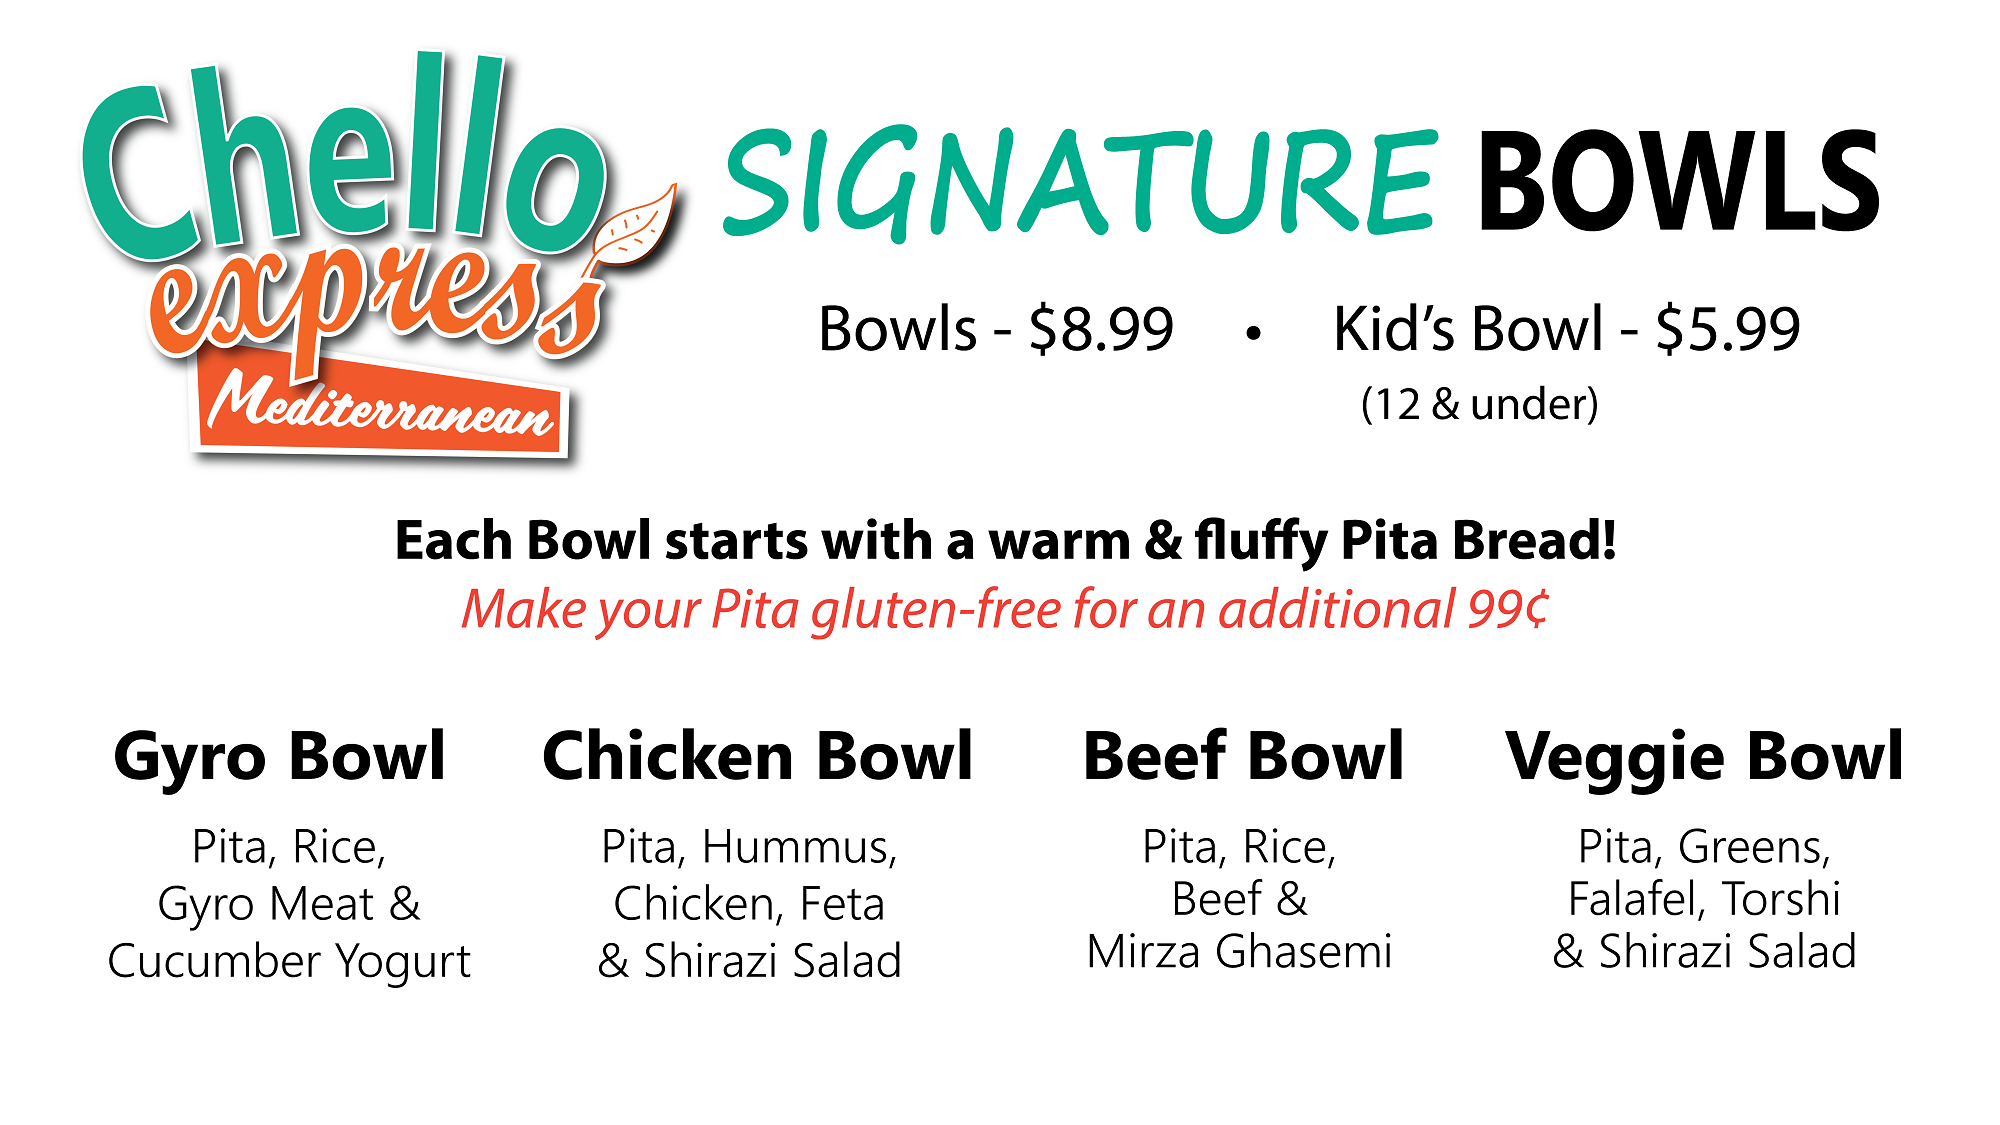 Not sure where to start? Check out our Signature Bowls! - Want to make your bowl gluten-free? No problem! We have fluffy, glute-free pitas available for only 99¢ more.